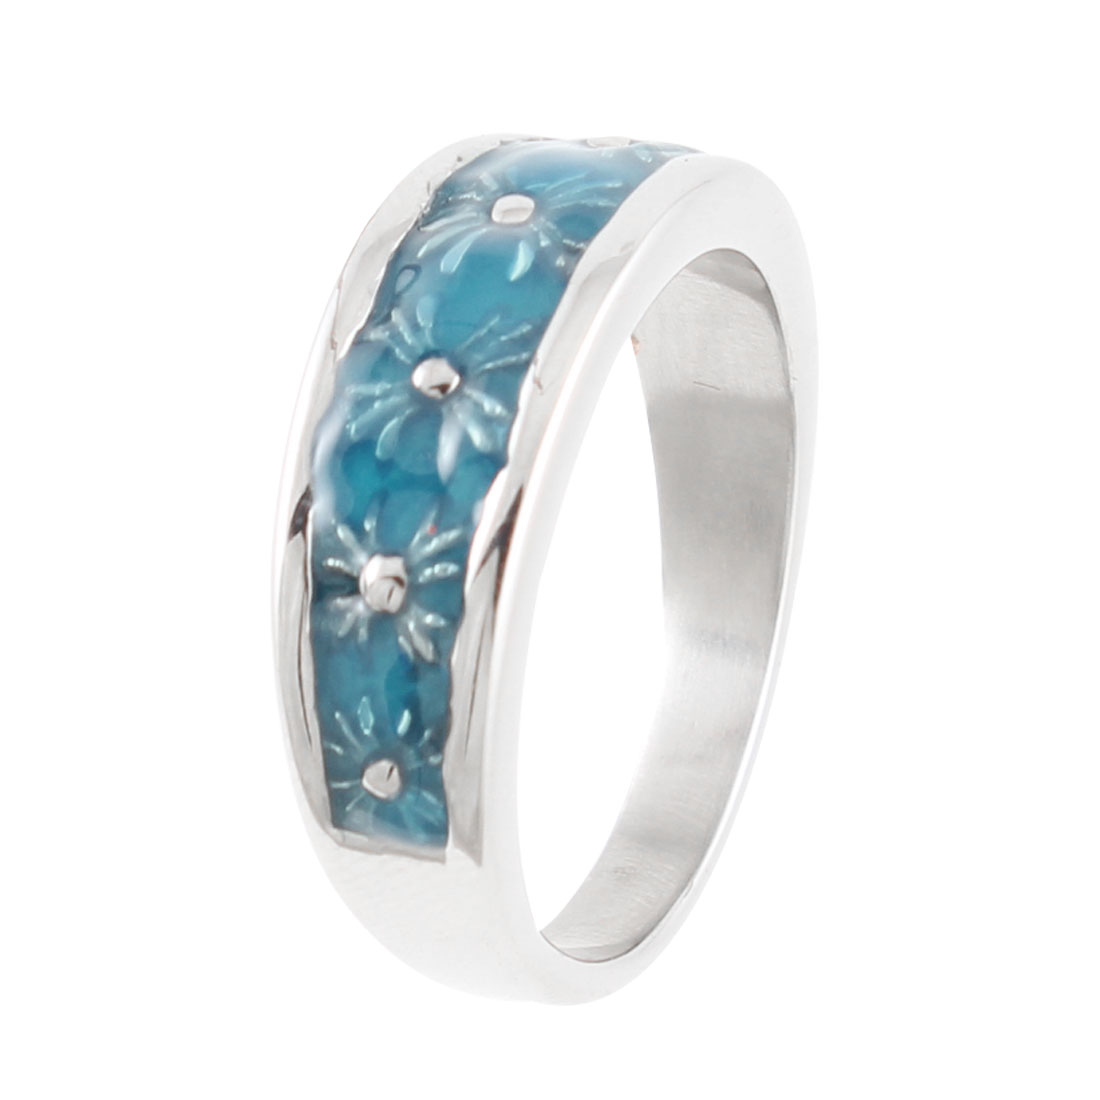 Man Silver Tone Blue Stainless Steel Plasitc Finger Ring US 10 1/2